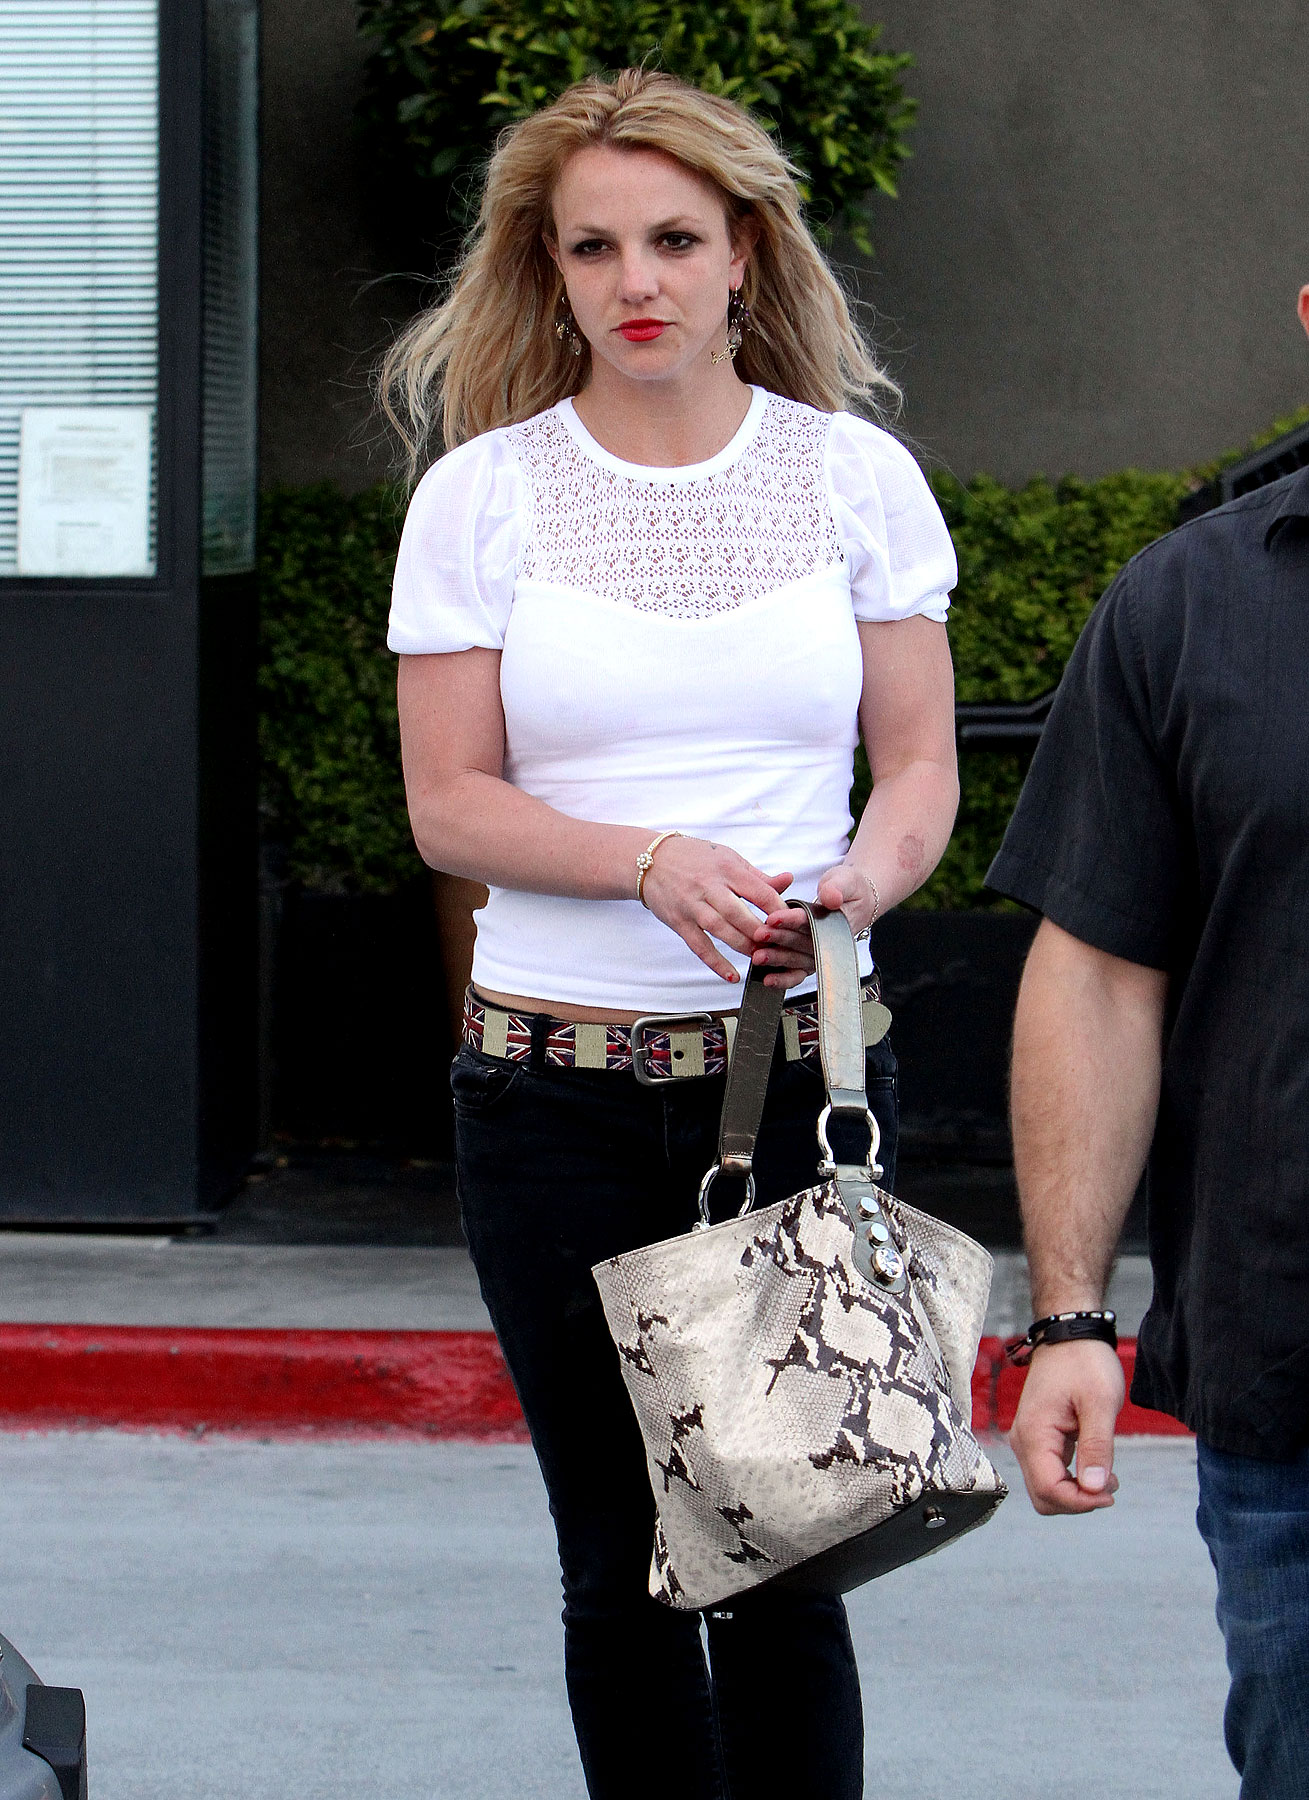 Britney Spears Goes To The Gas Station, On A Date (PHOTOS)